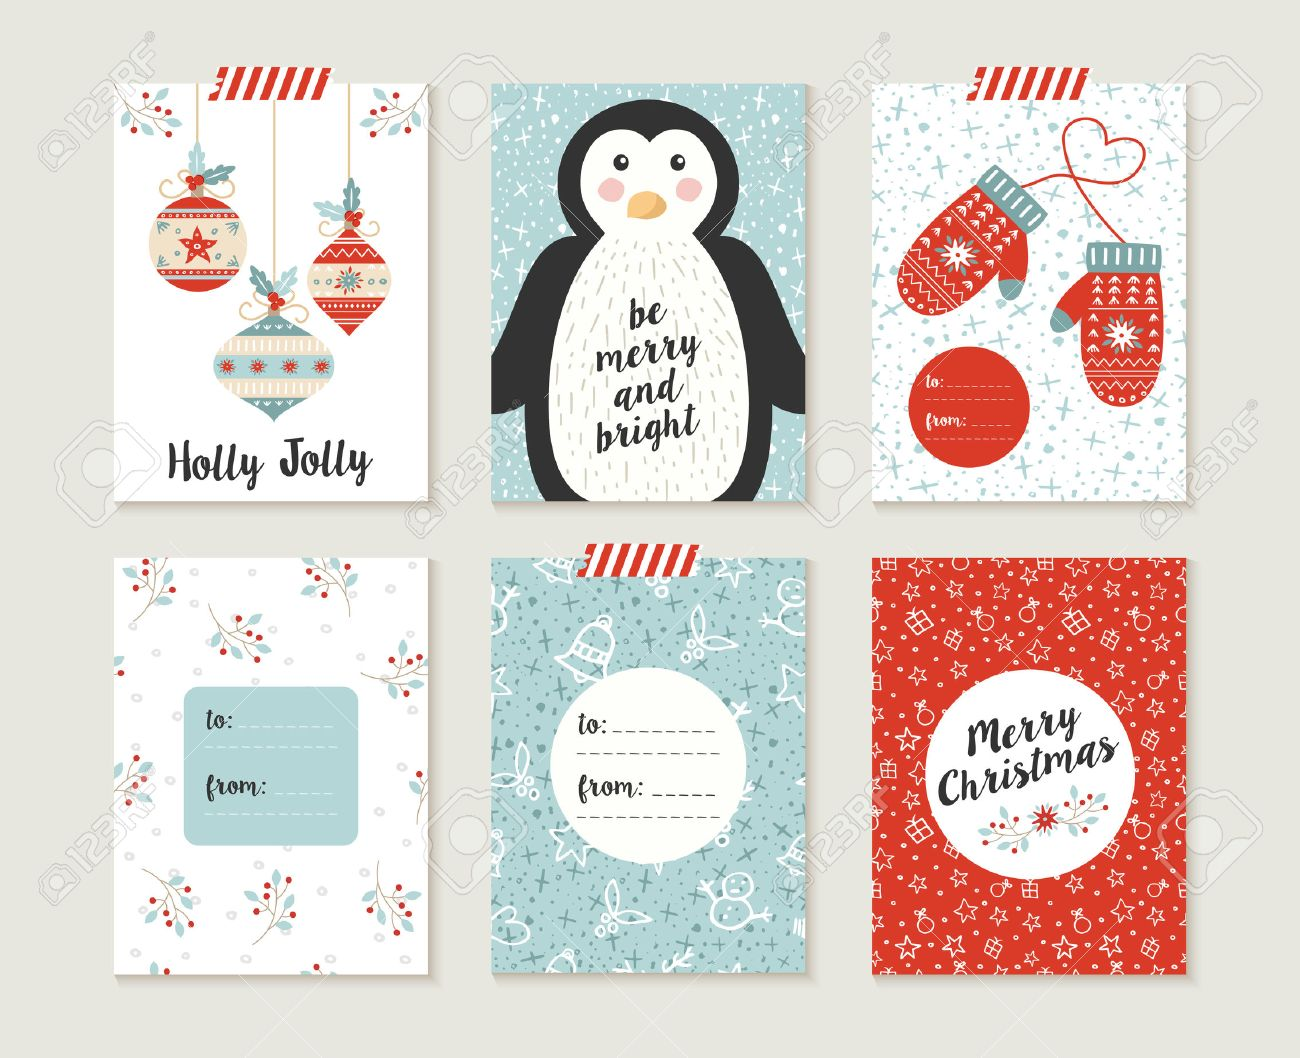 Merry Christmas Greeting Card Set With Cute Penguin, Xmas Bauble ...